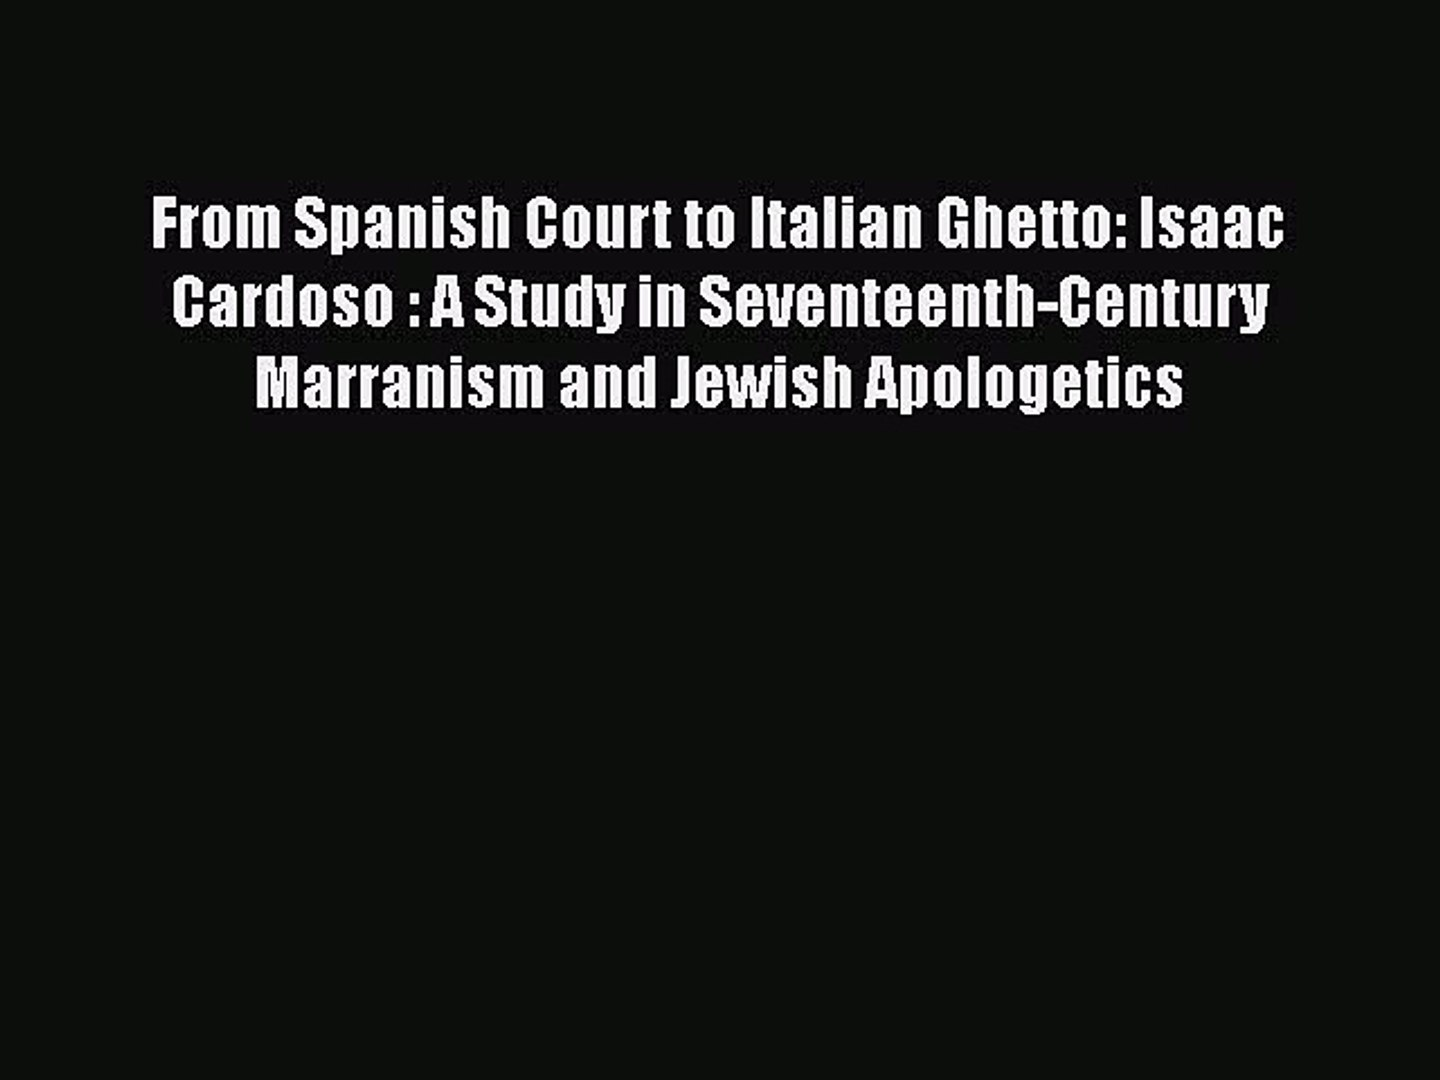 PDF From Spanish Court to Italian Ghetto: Isaac Cardoso : A Study in Seventeenth-Century Marranism